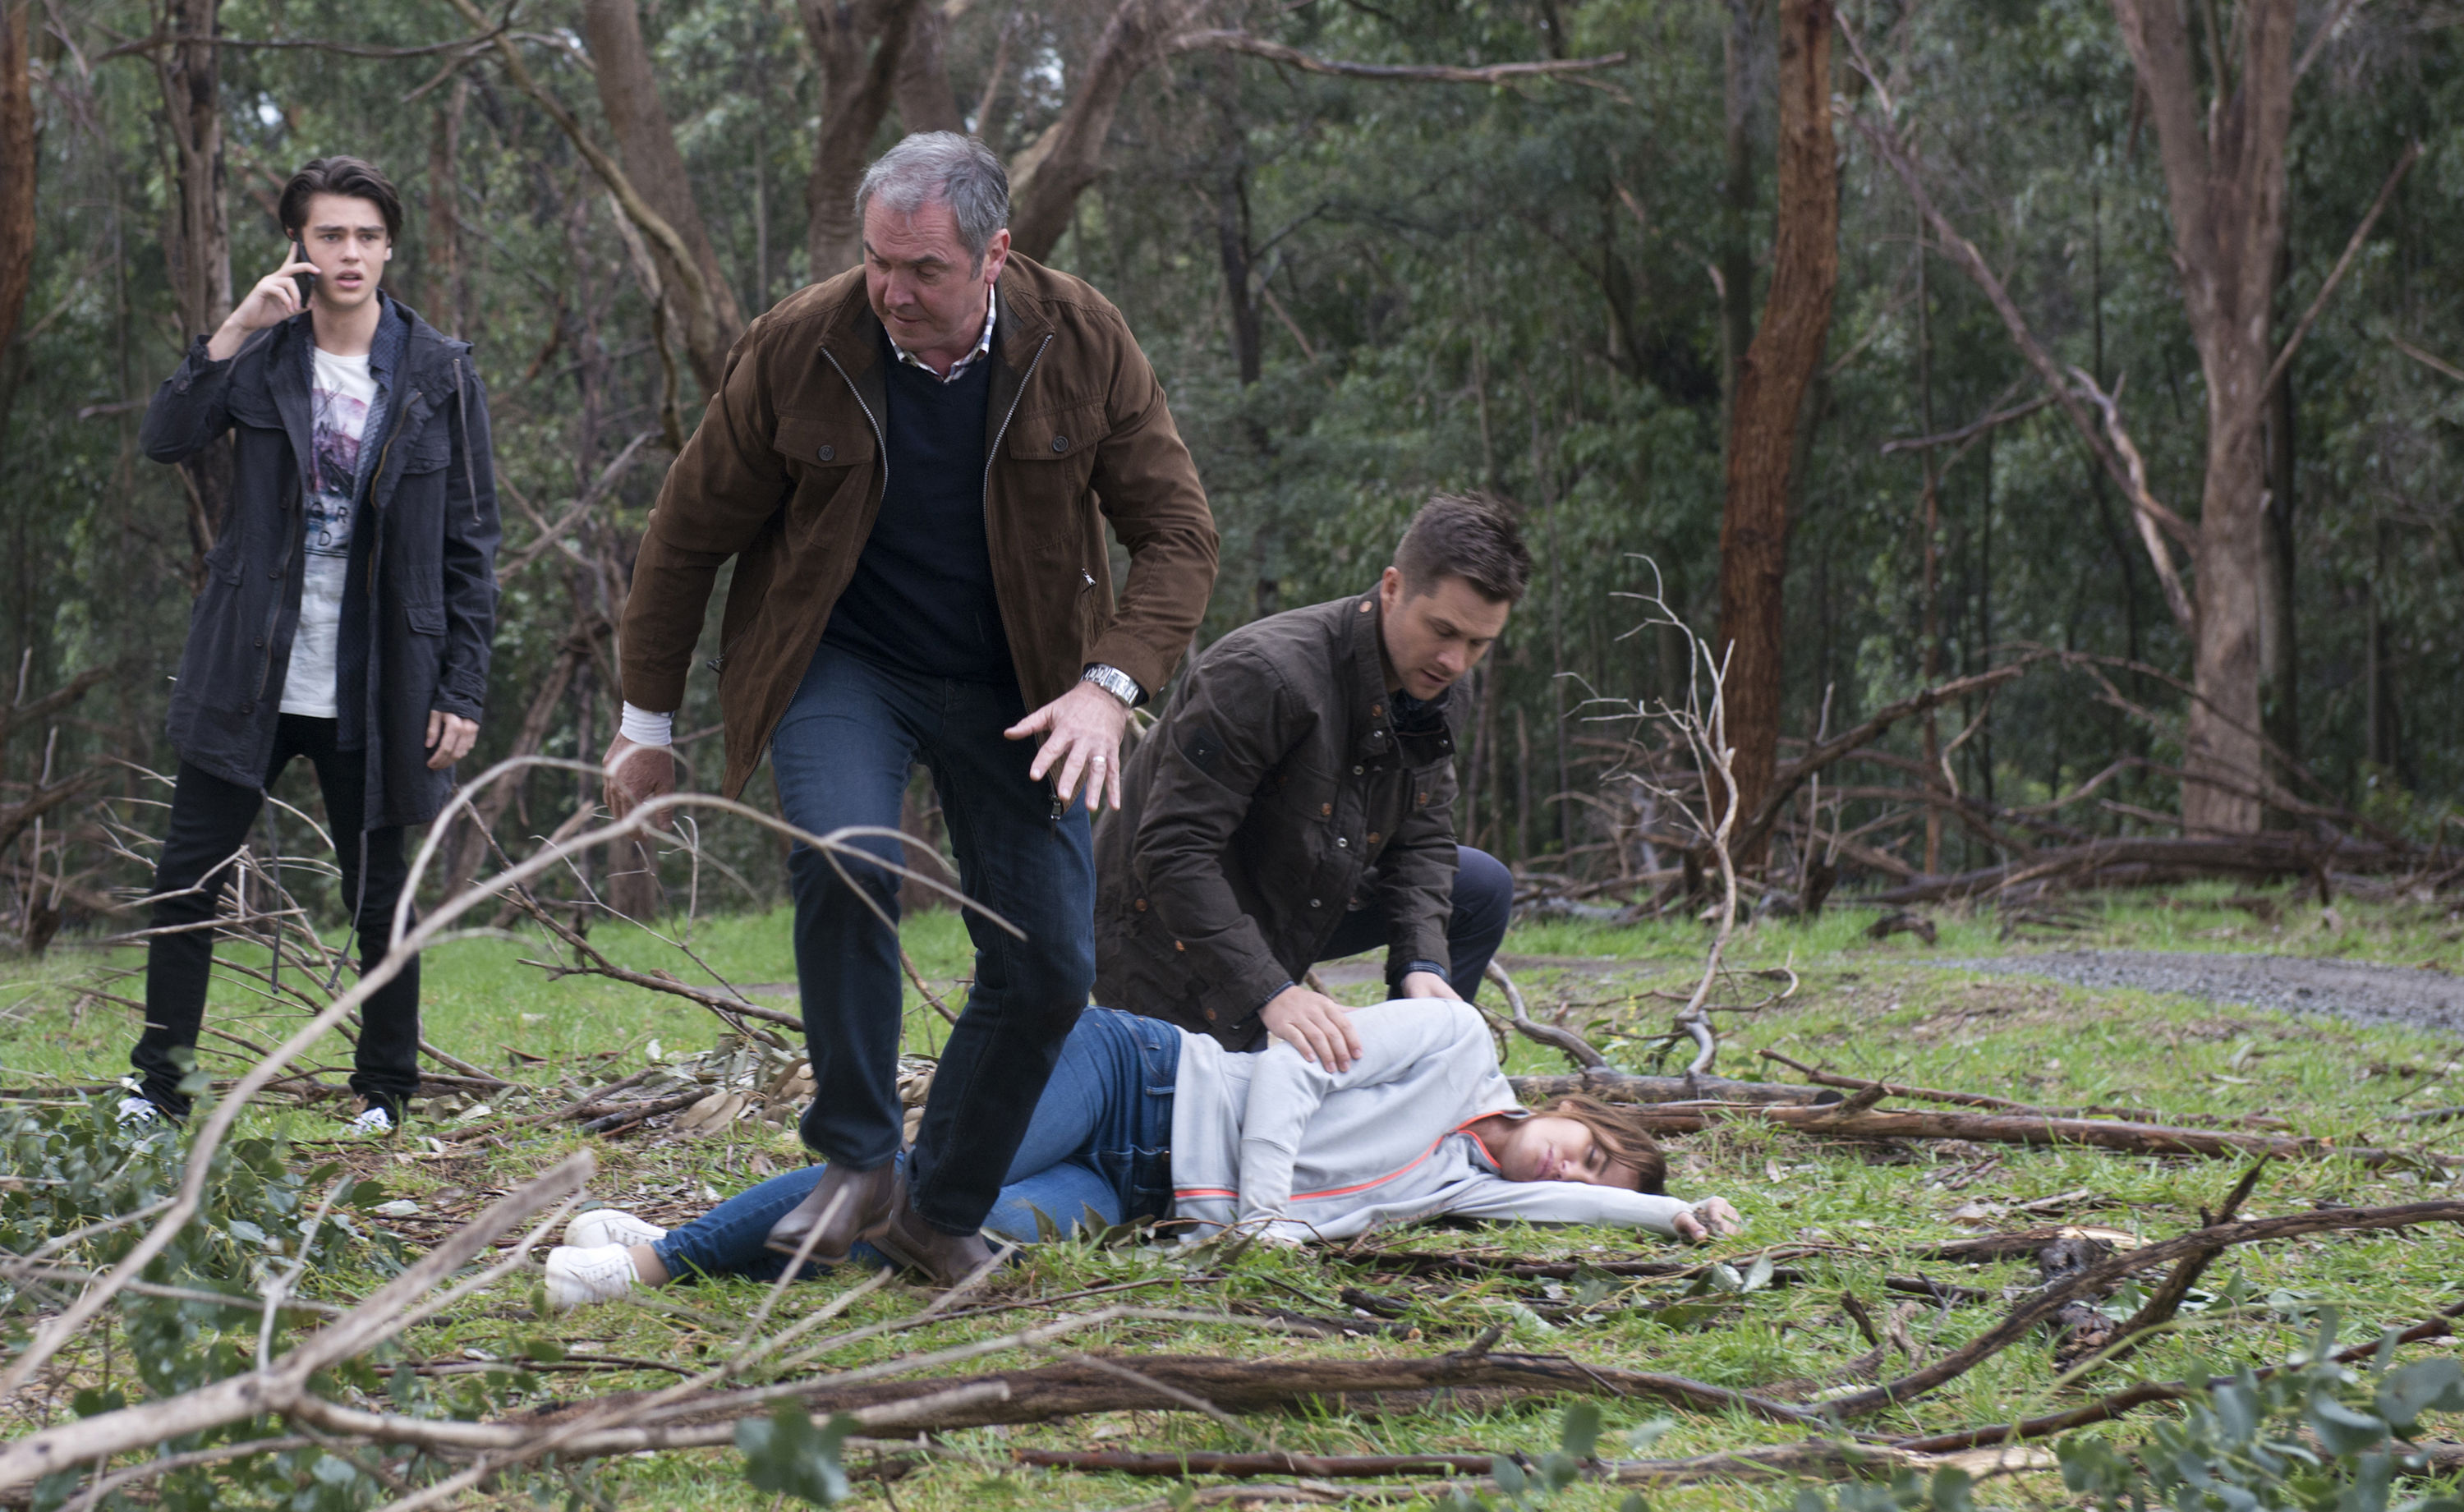 Neighbours: Is Karl Kennedy to blame for the death in the hot air balloon disaster?